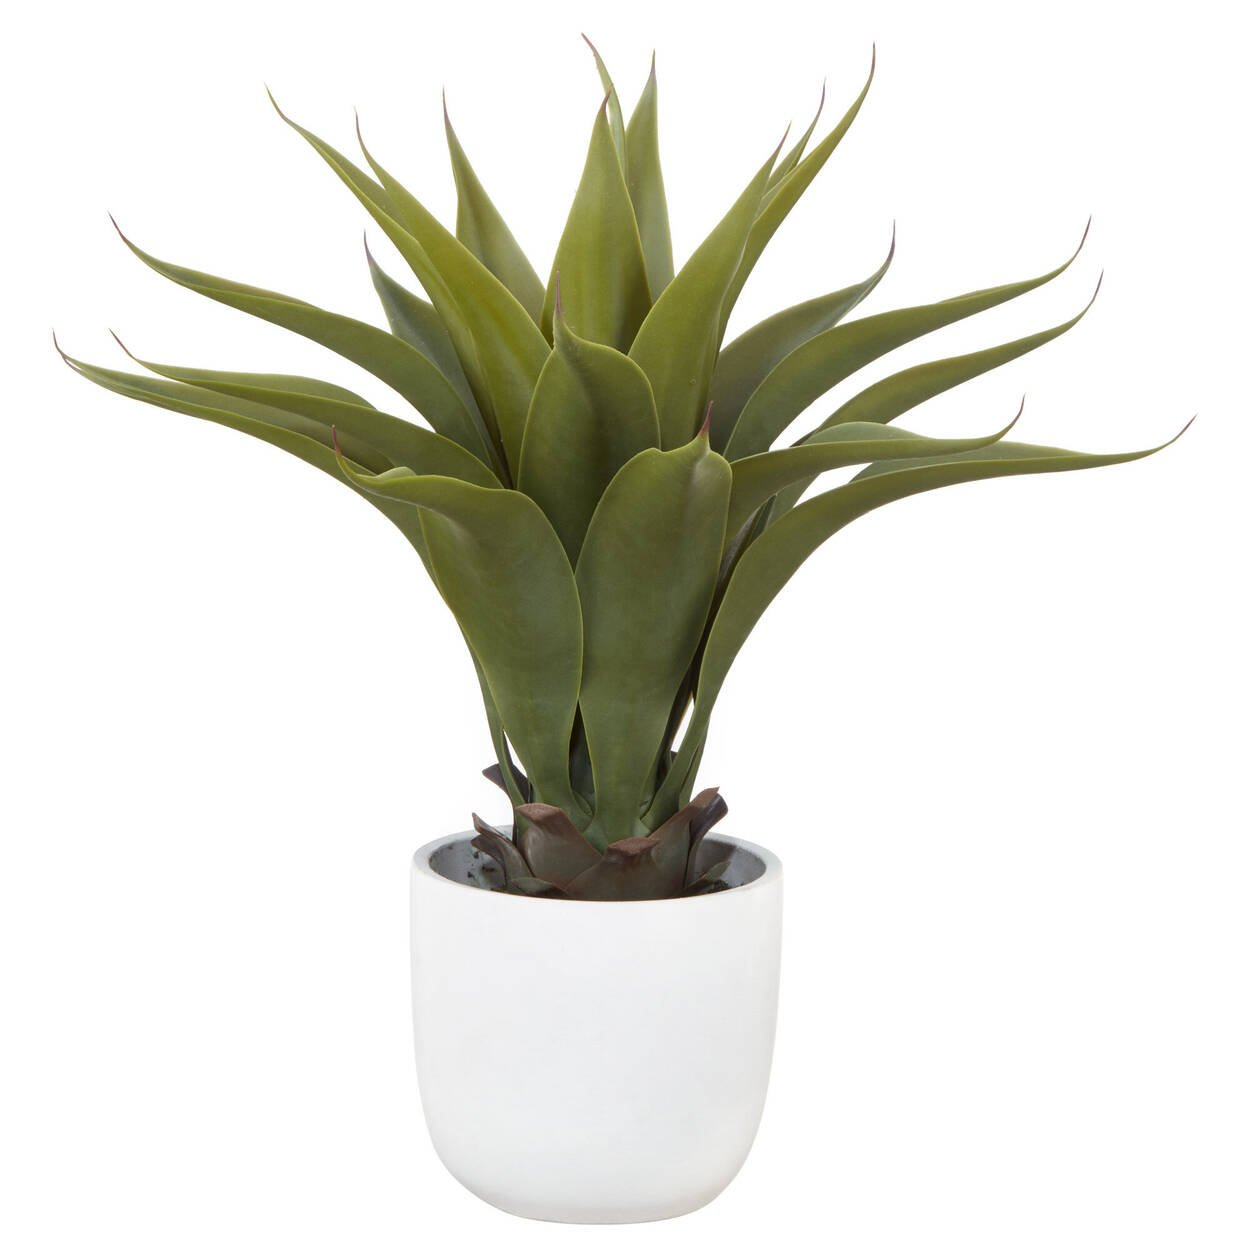 Cement Potted Greenery